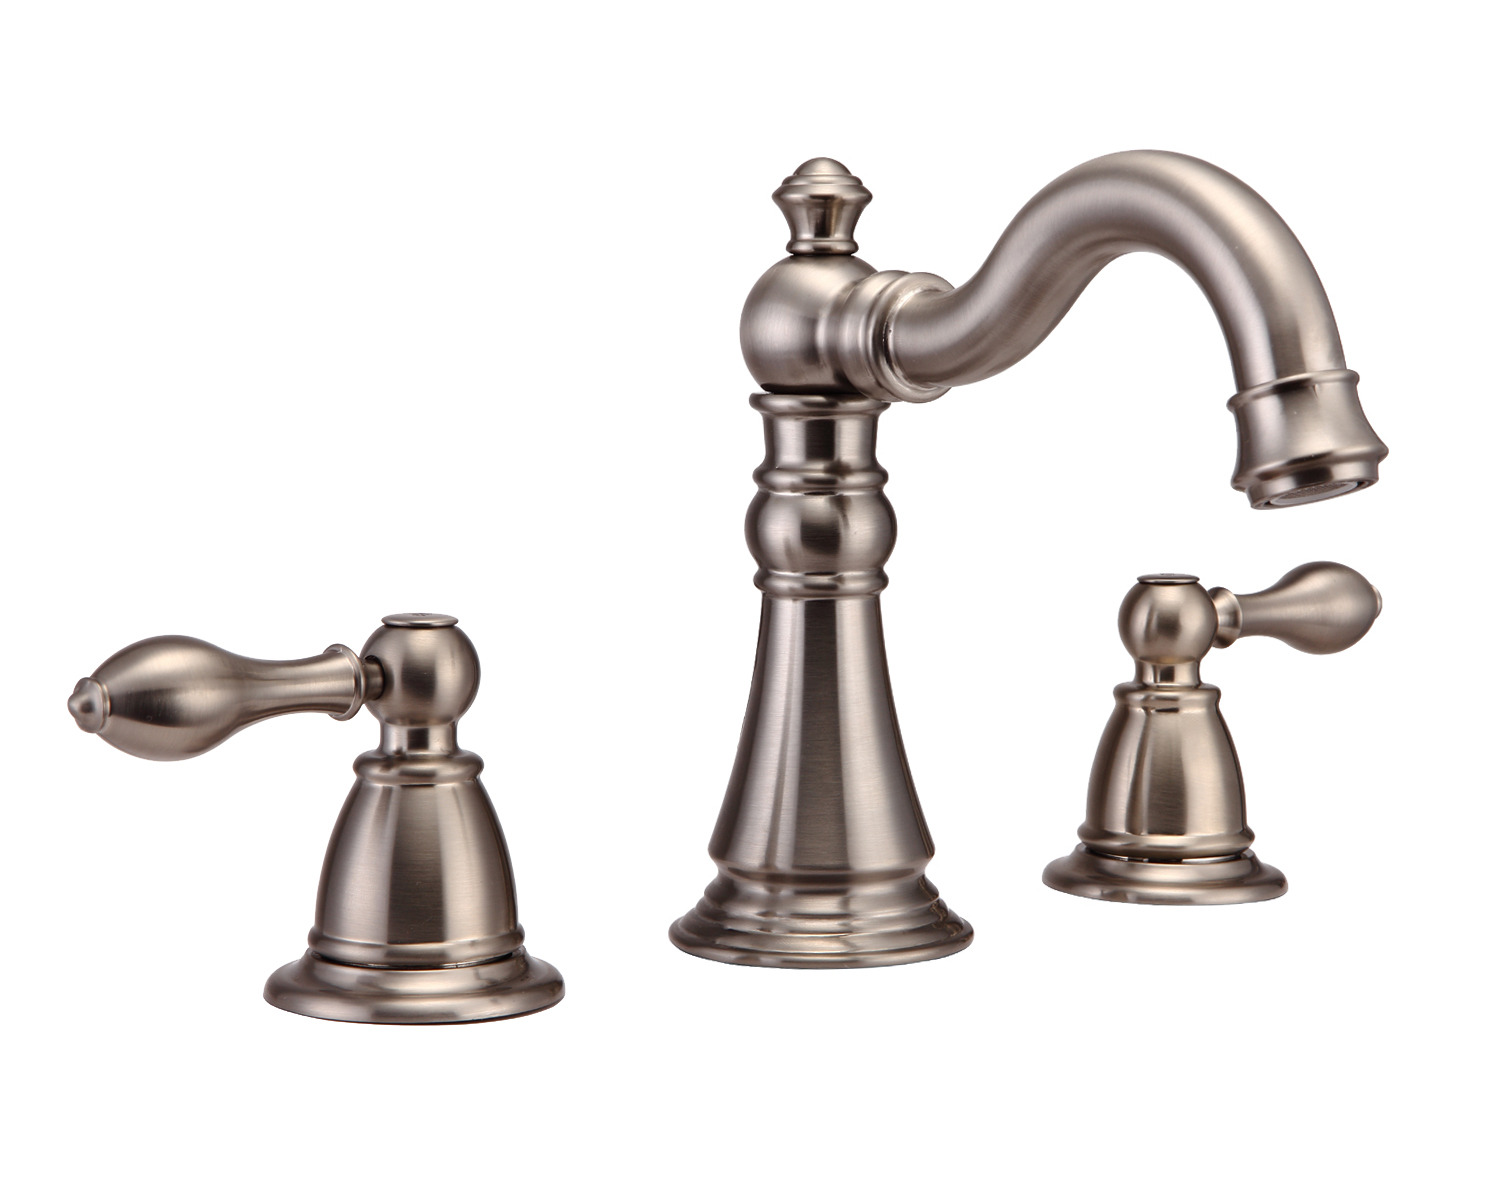 Bathroom Faucets Brushed Nickel Widespread : Bathroom Vanity Sink Widespread Lavatory Faucet Brushed Nickel cUPC ...